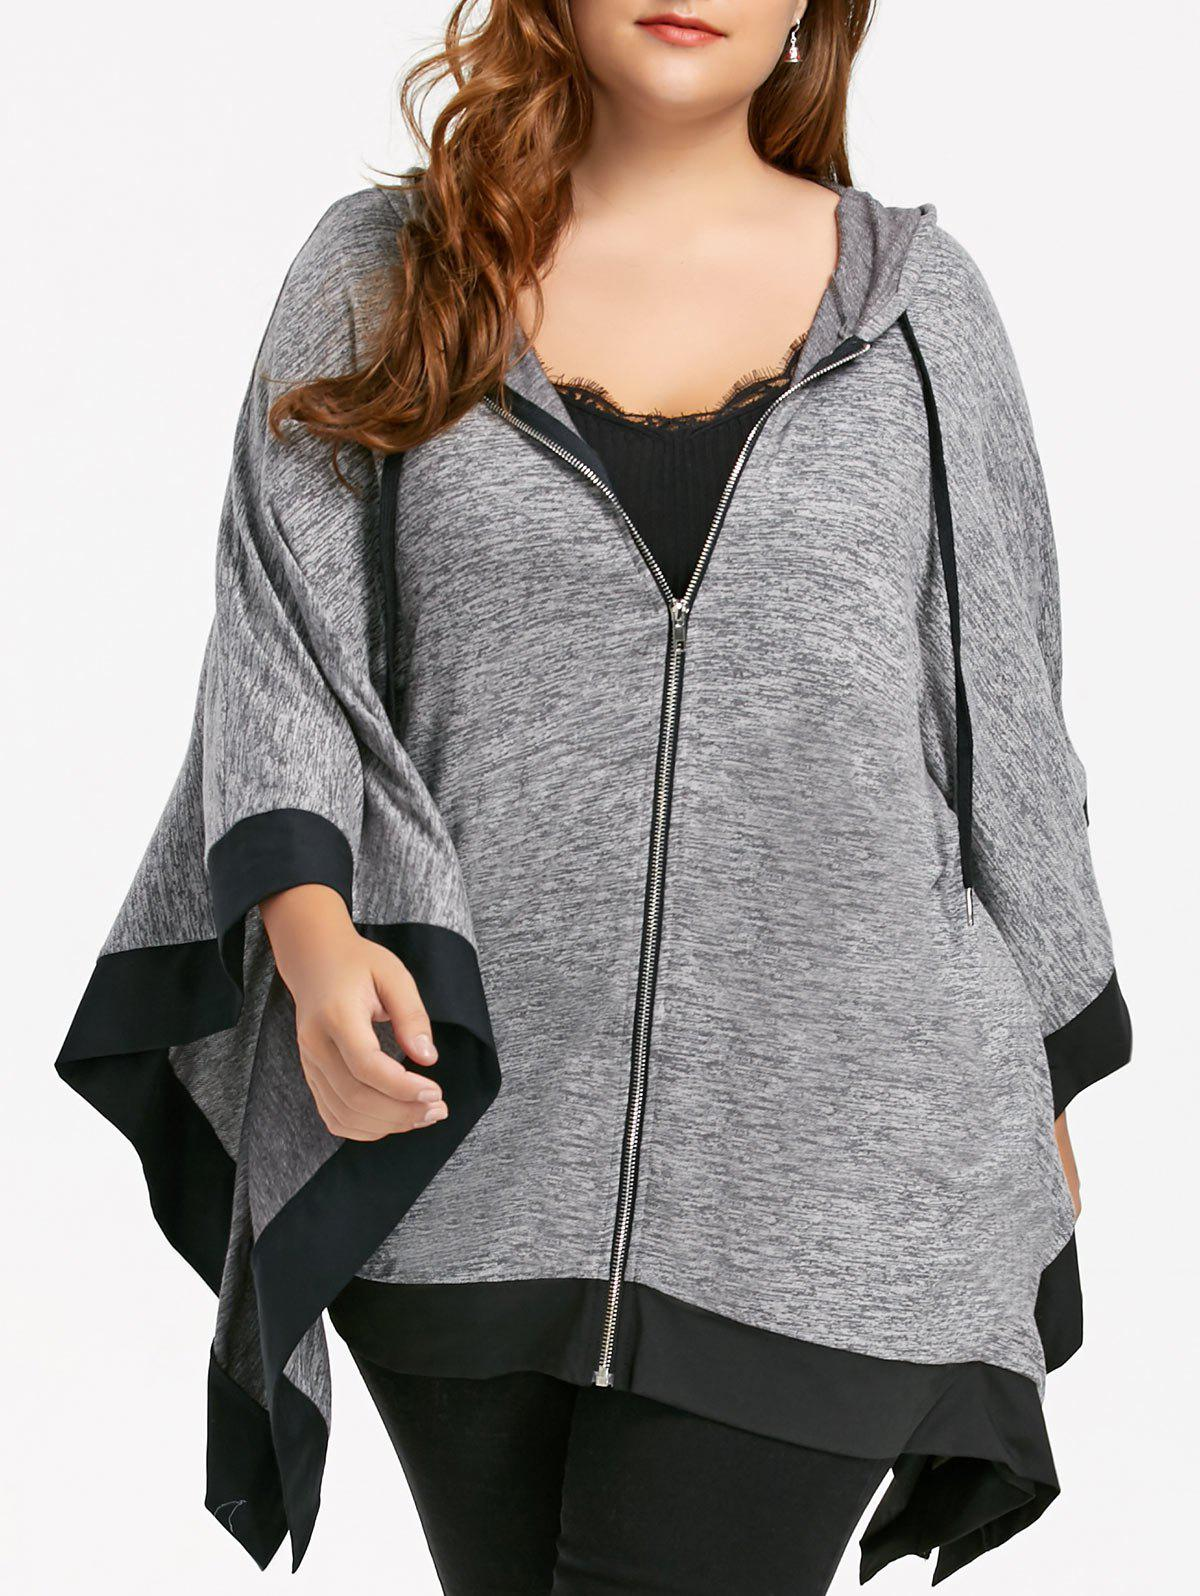 Dolman Sleeve Hooded Plus Size Zip Up Cape CoatWOMEN<br><br>Size: 4XL; Color: BLACK; Clothes Type: Others; Material: Cotton Blends,Polyester; Type: Wide-waisted; Shirt Length: Long; Sleeve Length: Three Quarter; Collar: Hooded; Pattern Type: Others; Style: Fashion; Season: Fall,Winter; Weight: 0.5910kg; Package Contents: 1 x Coat;